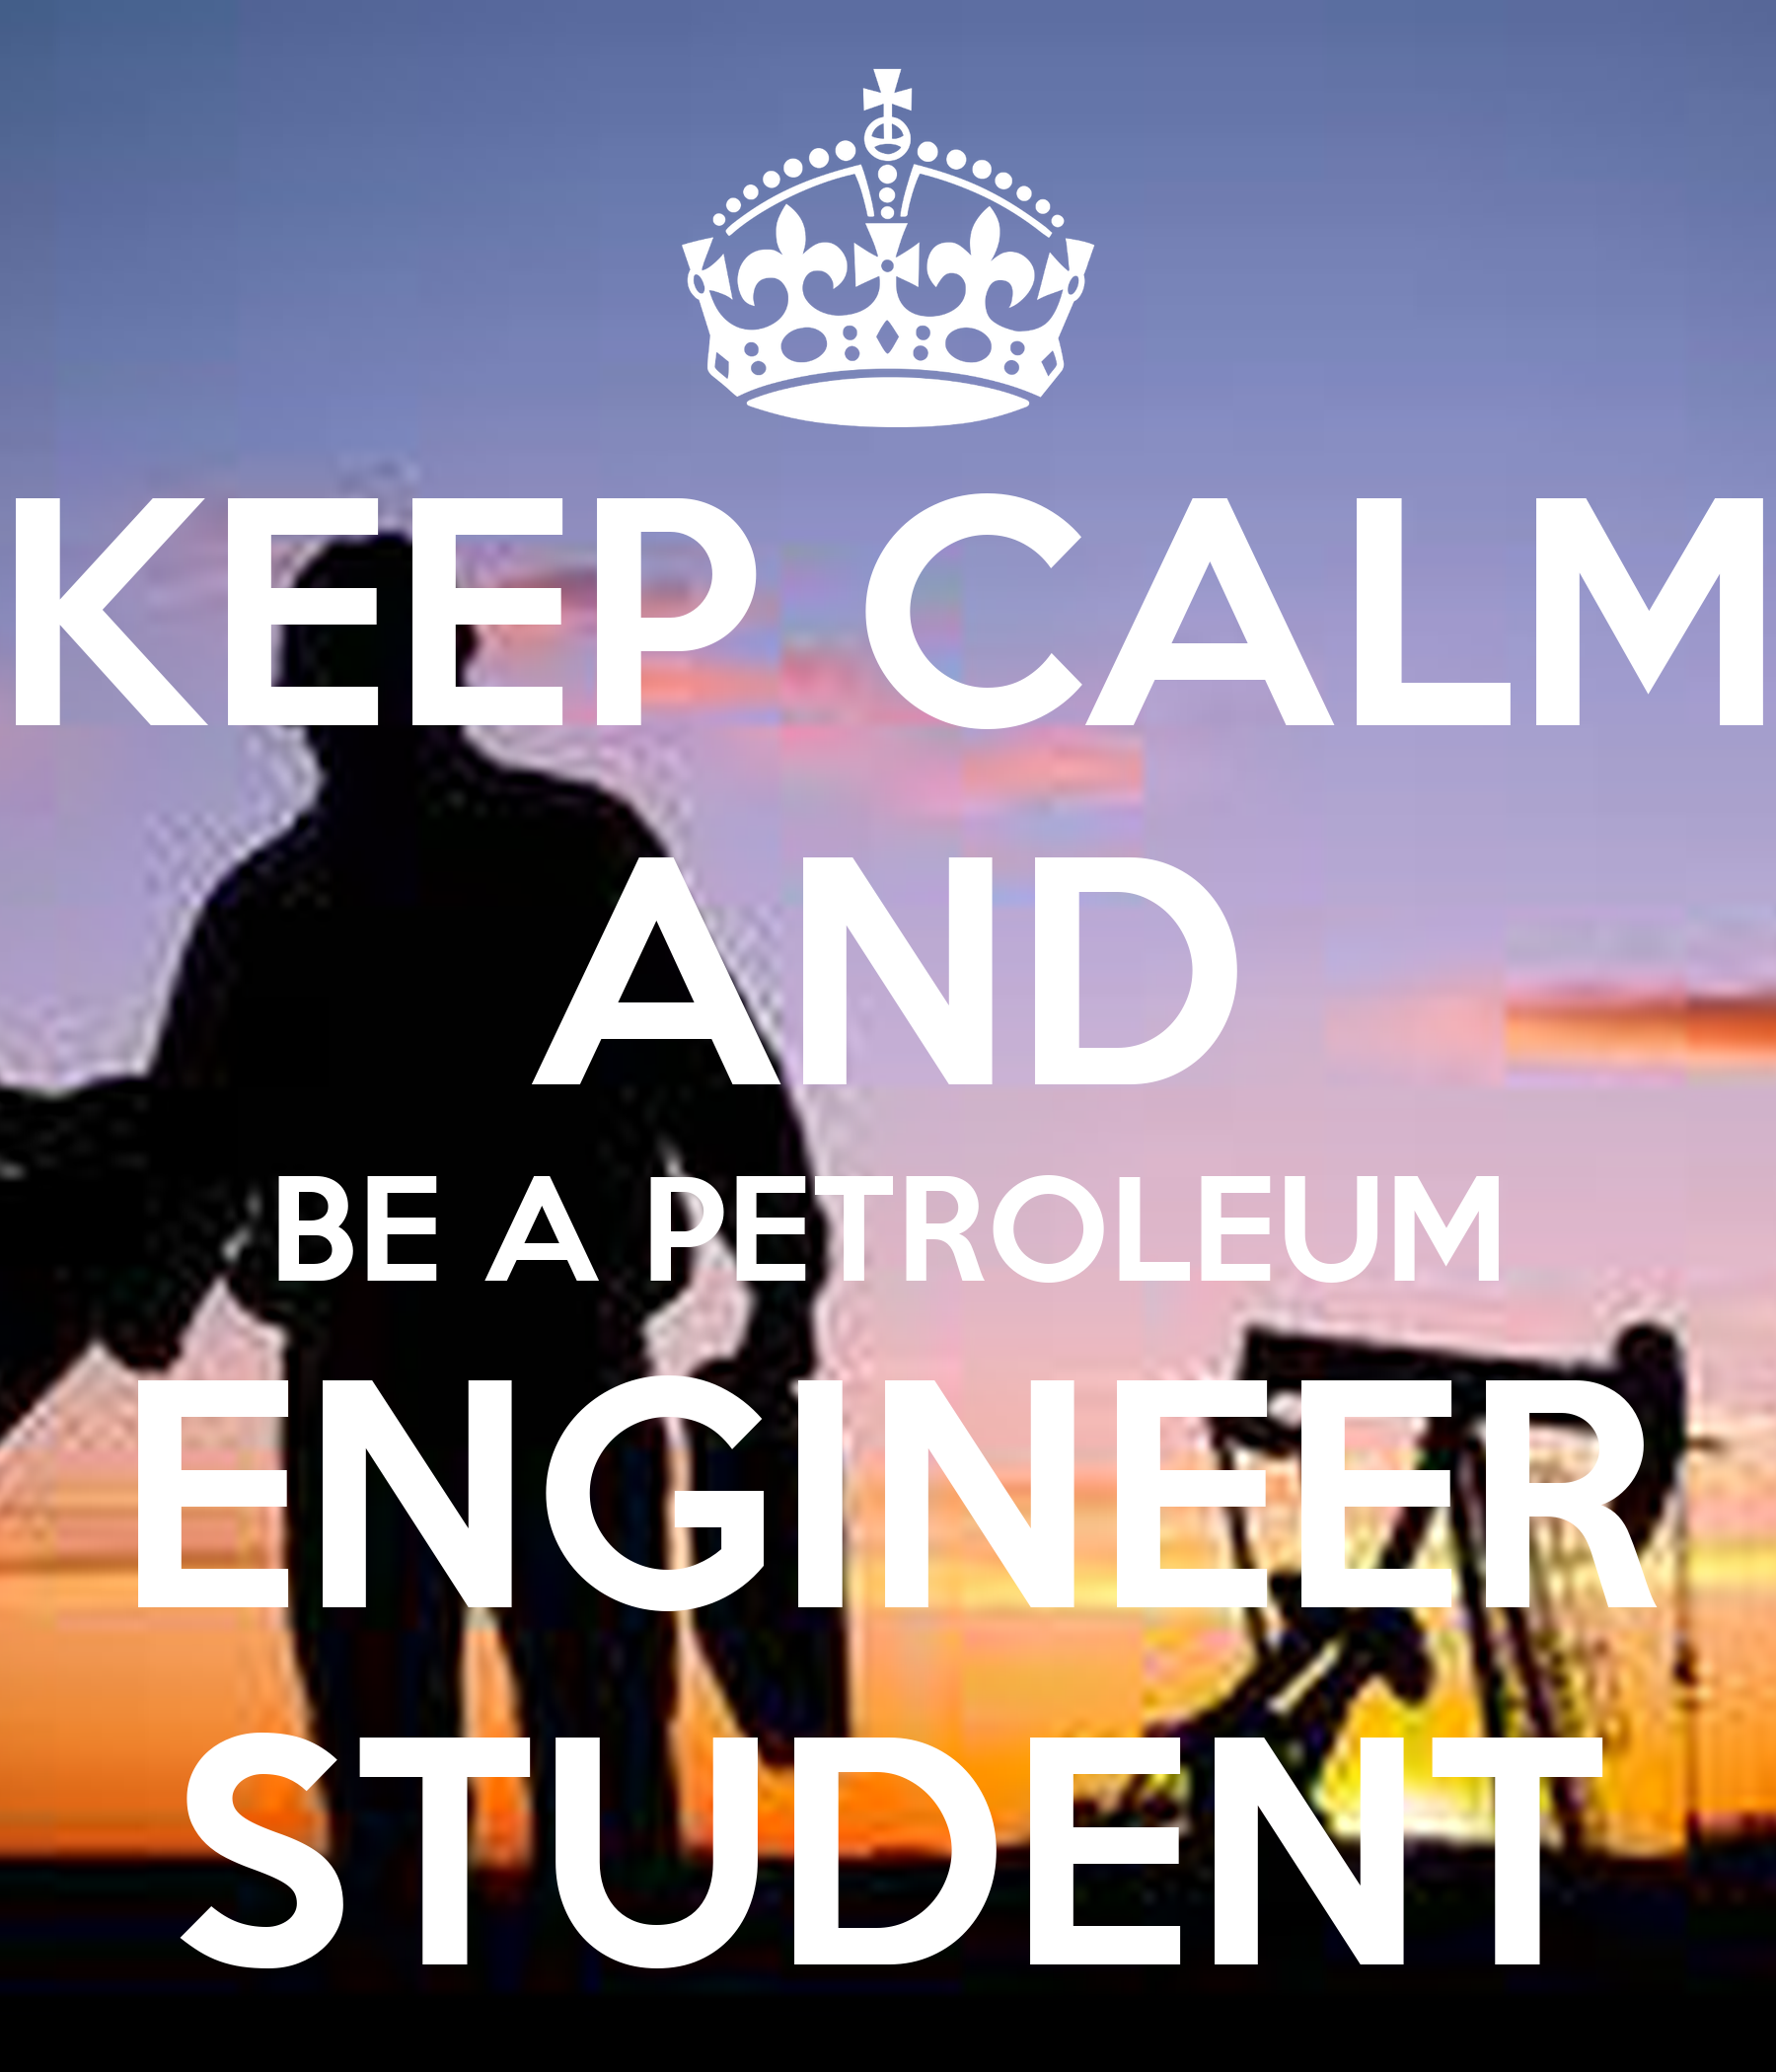 essay for petroleum engineering Many accredited colleges offer petroleum engineering classes online to help   petroleum engineering is a specialist degree within the engineering field   woman typing her graduate school essay on a very small keyboard.